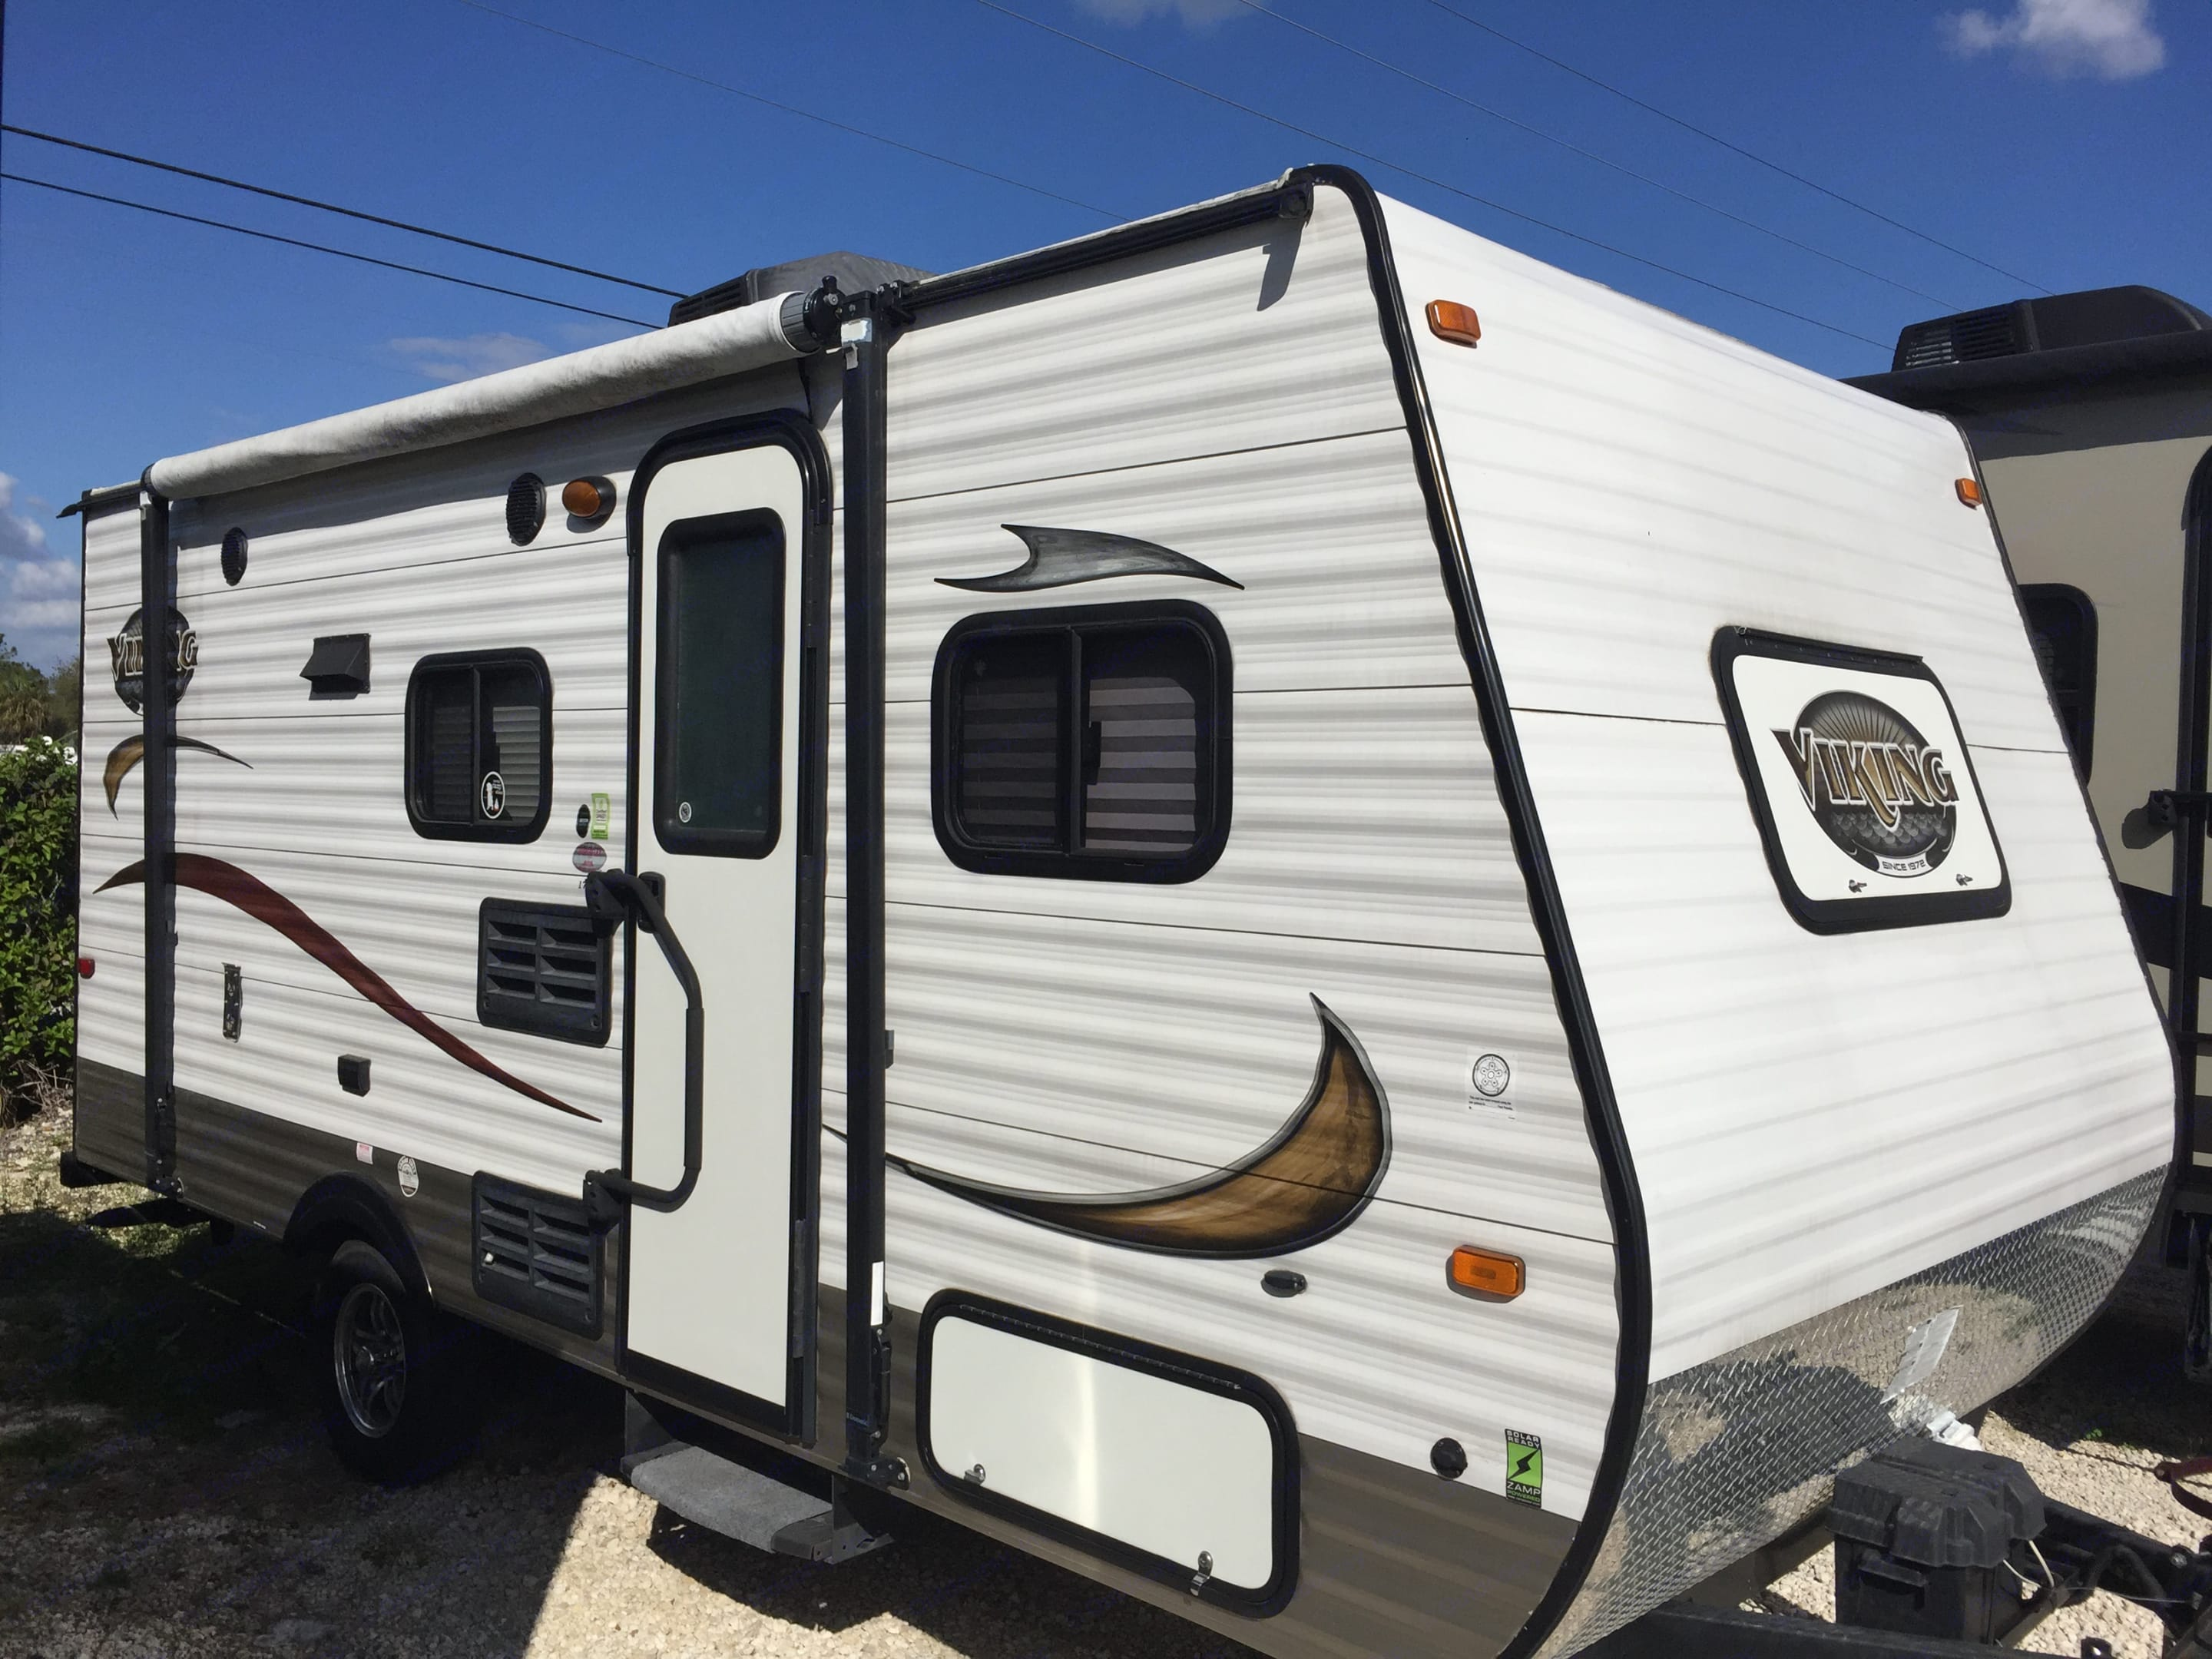 Looks like new! 2015, Viking 17BH Travel Trailer. 17 ft long with 3 ft tongue hitch! 20 ft total from back to front ball hitch!. Coachmen Viking 2015